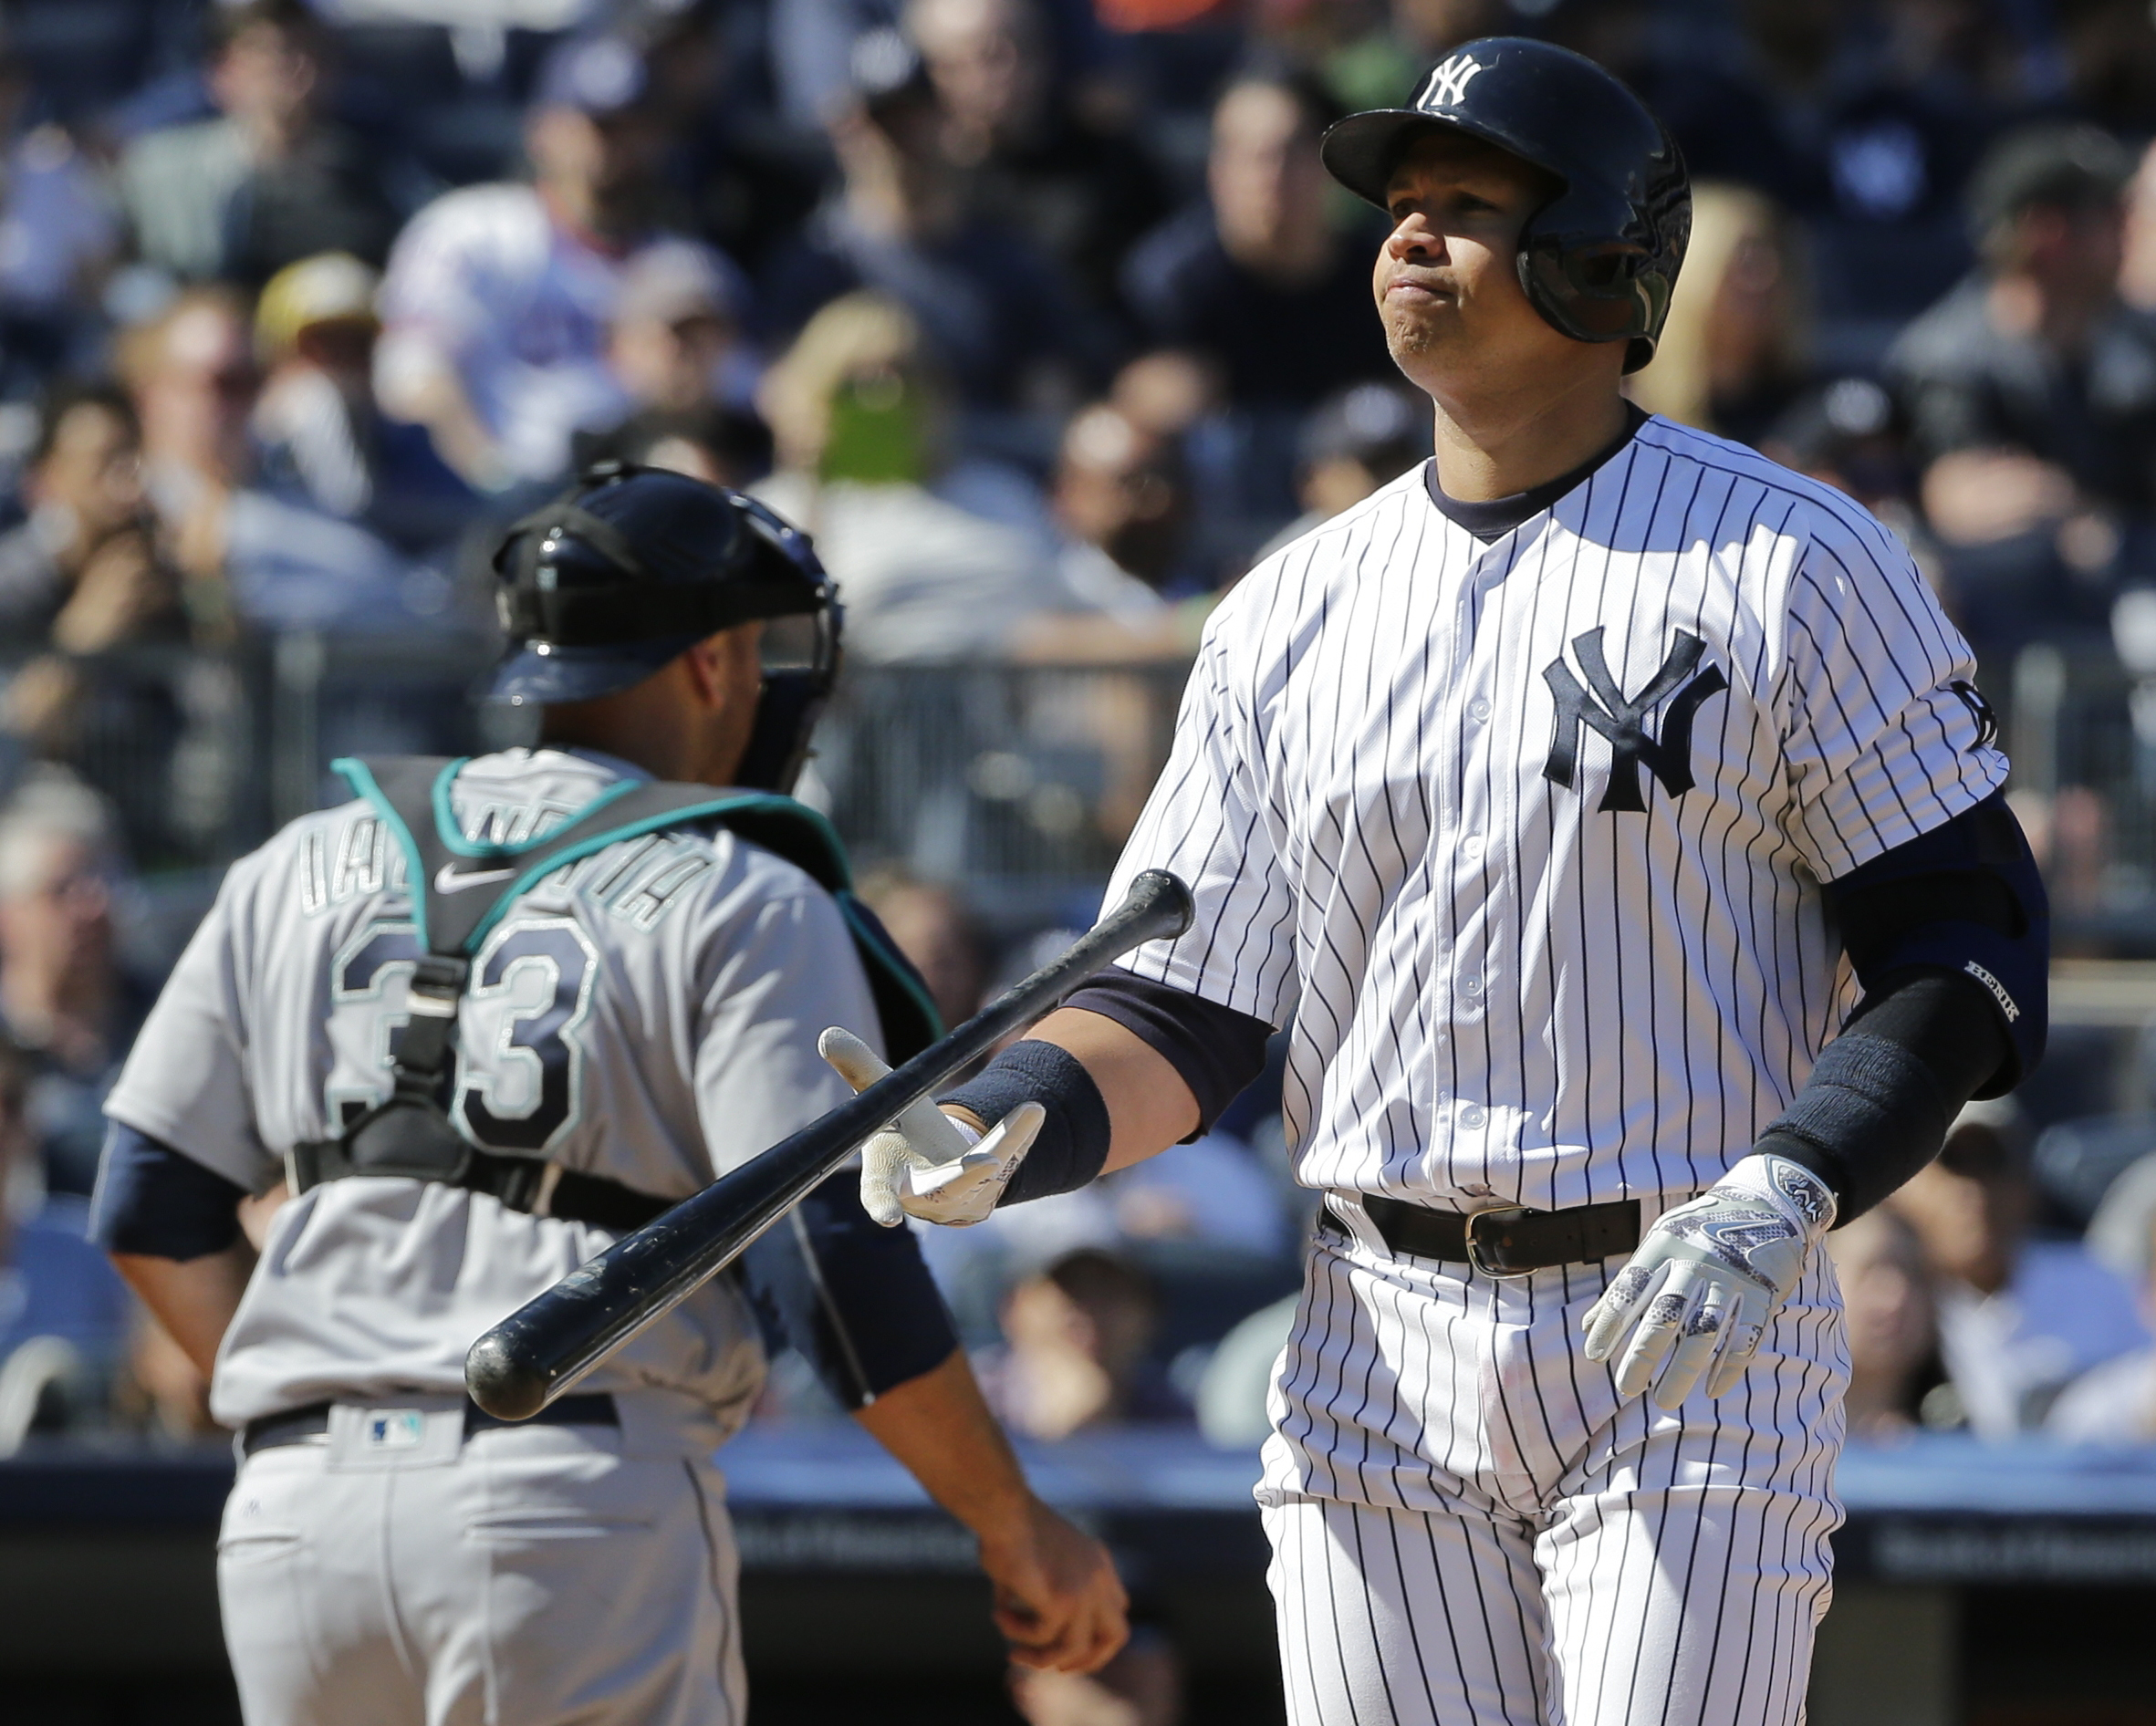 New York Yankees' Alex Rodriguez flips his bat after striking out during the sixth inning of a baseball game as Seattle Mariners catcher Chris Iannetta (33) walks toward the dugout Saturday, April 16, 2016, in New York. (AP Photo/Frank Franklin II)